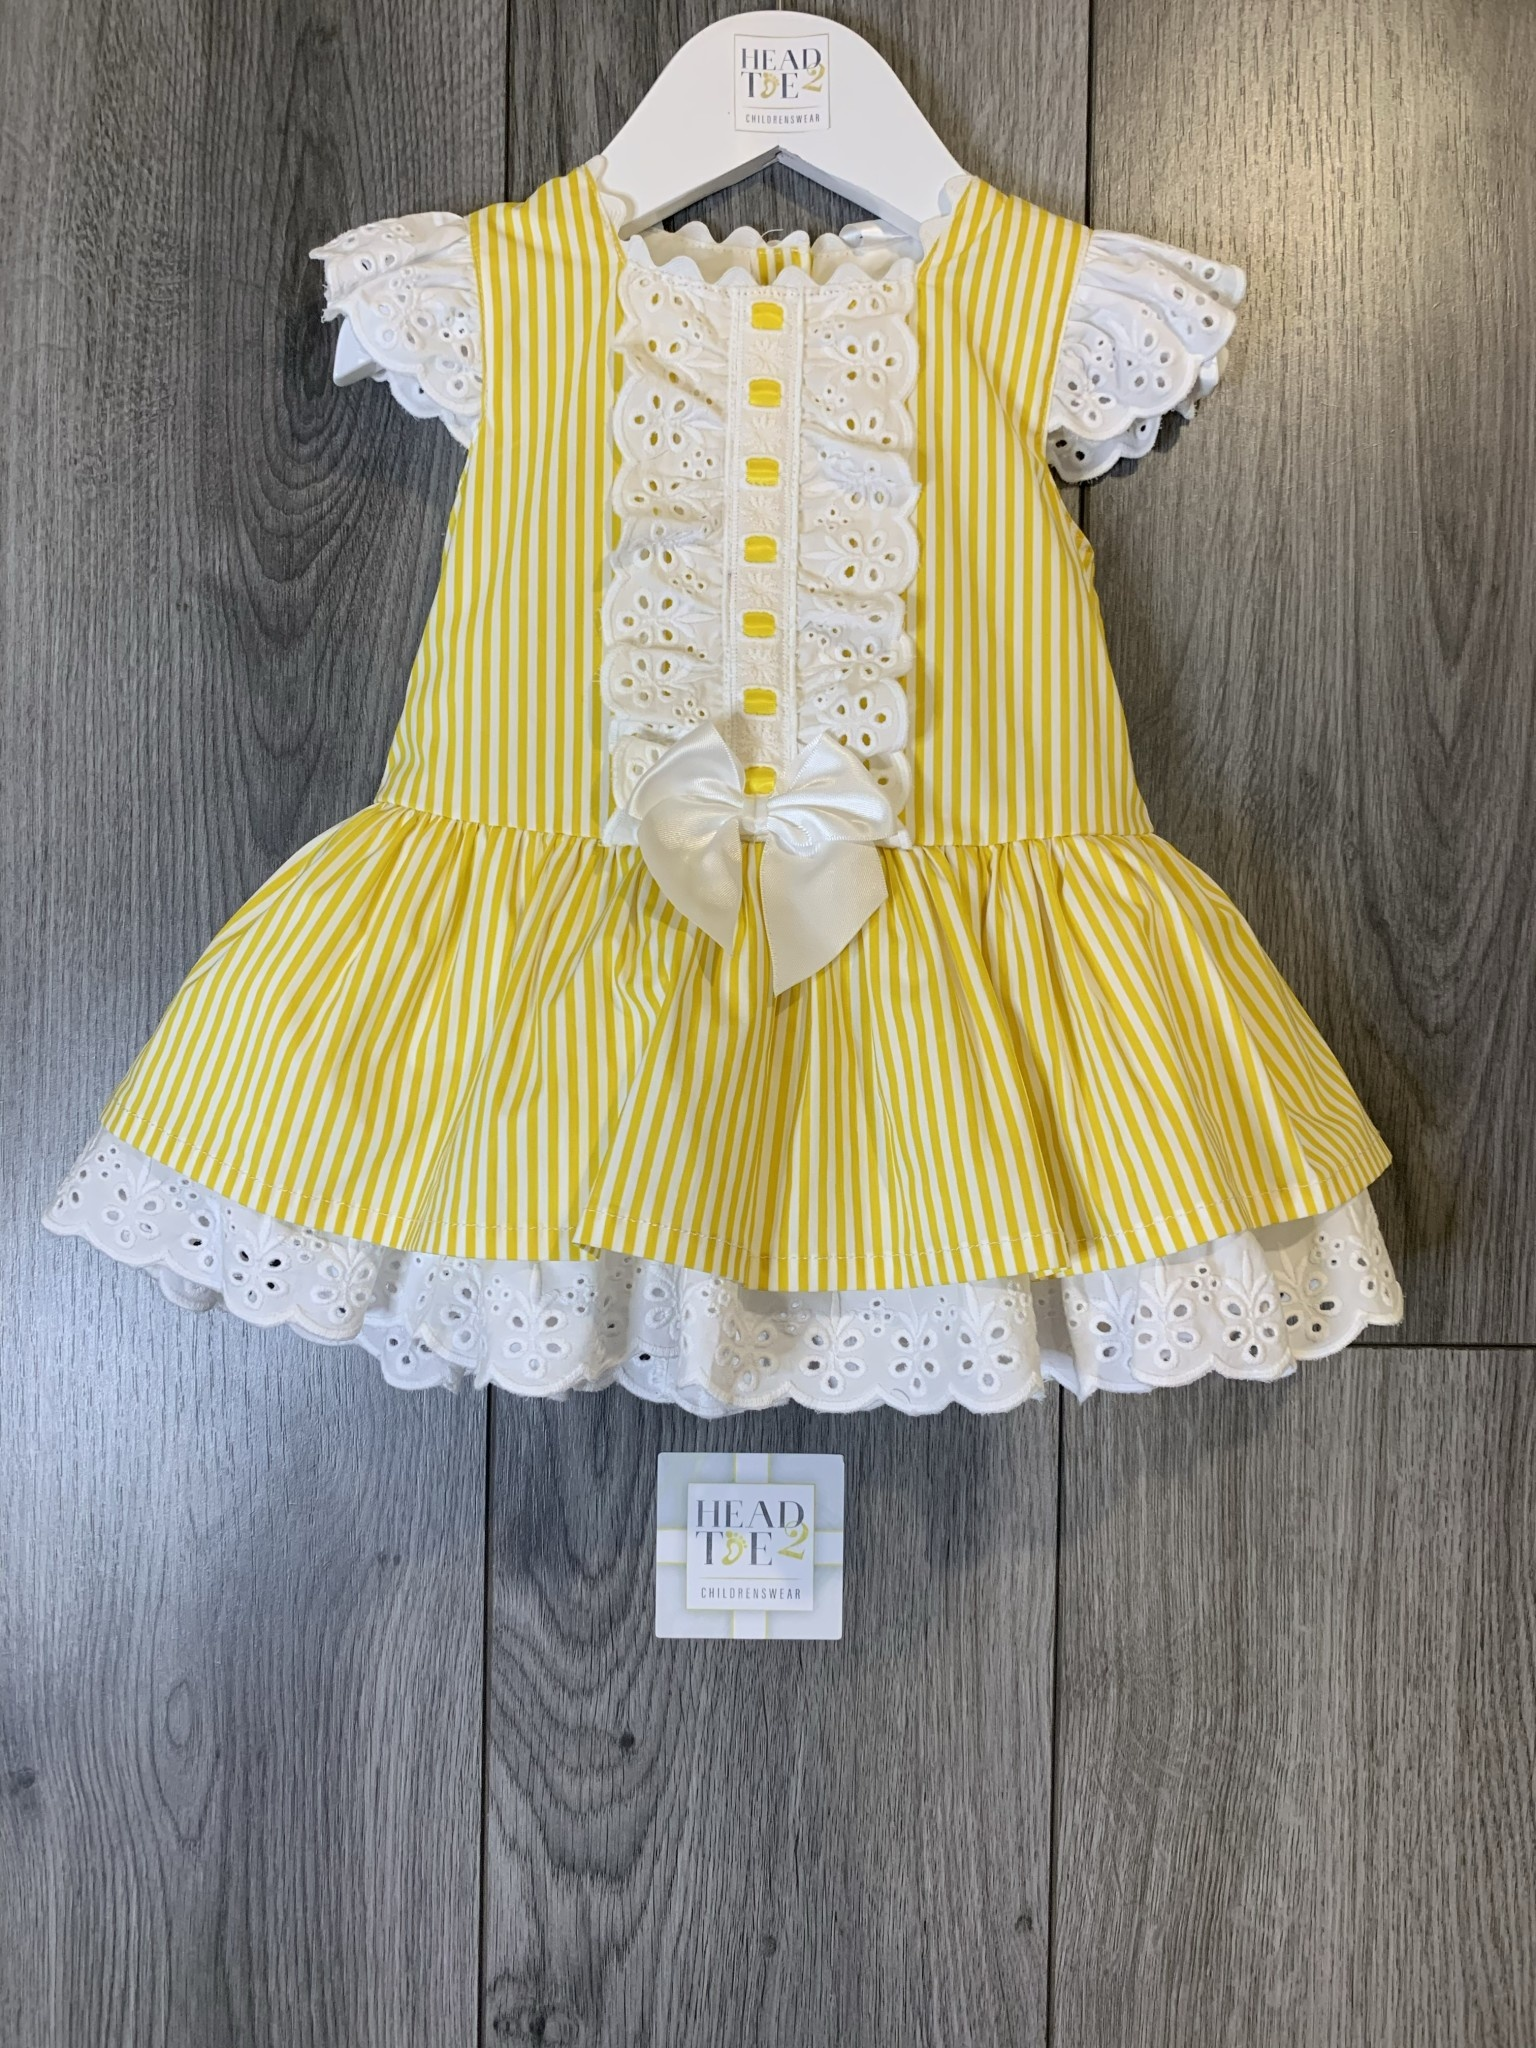 Spanish Yellow striped dress with middle bow detail 1904